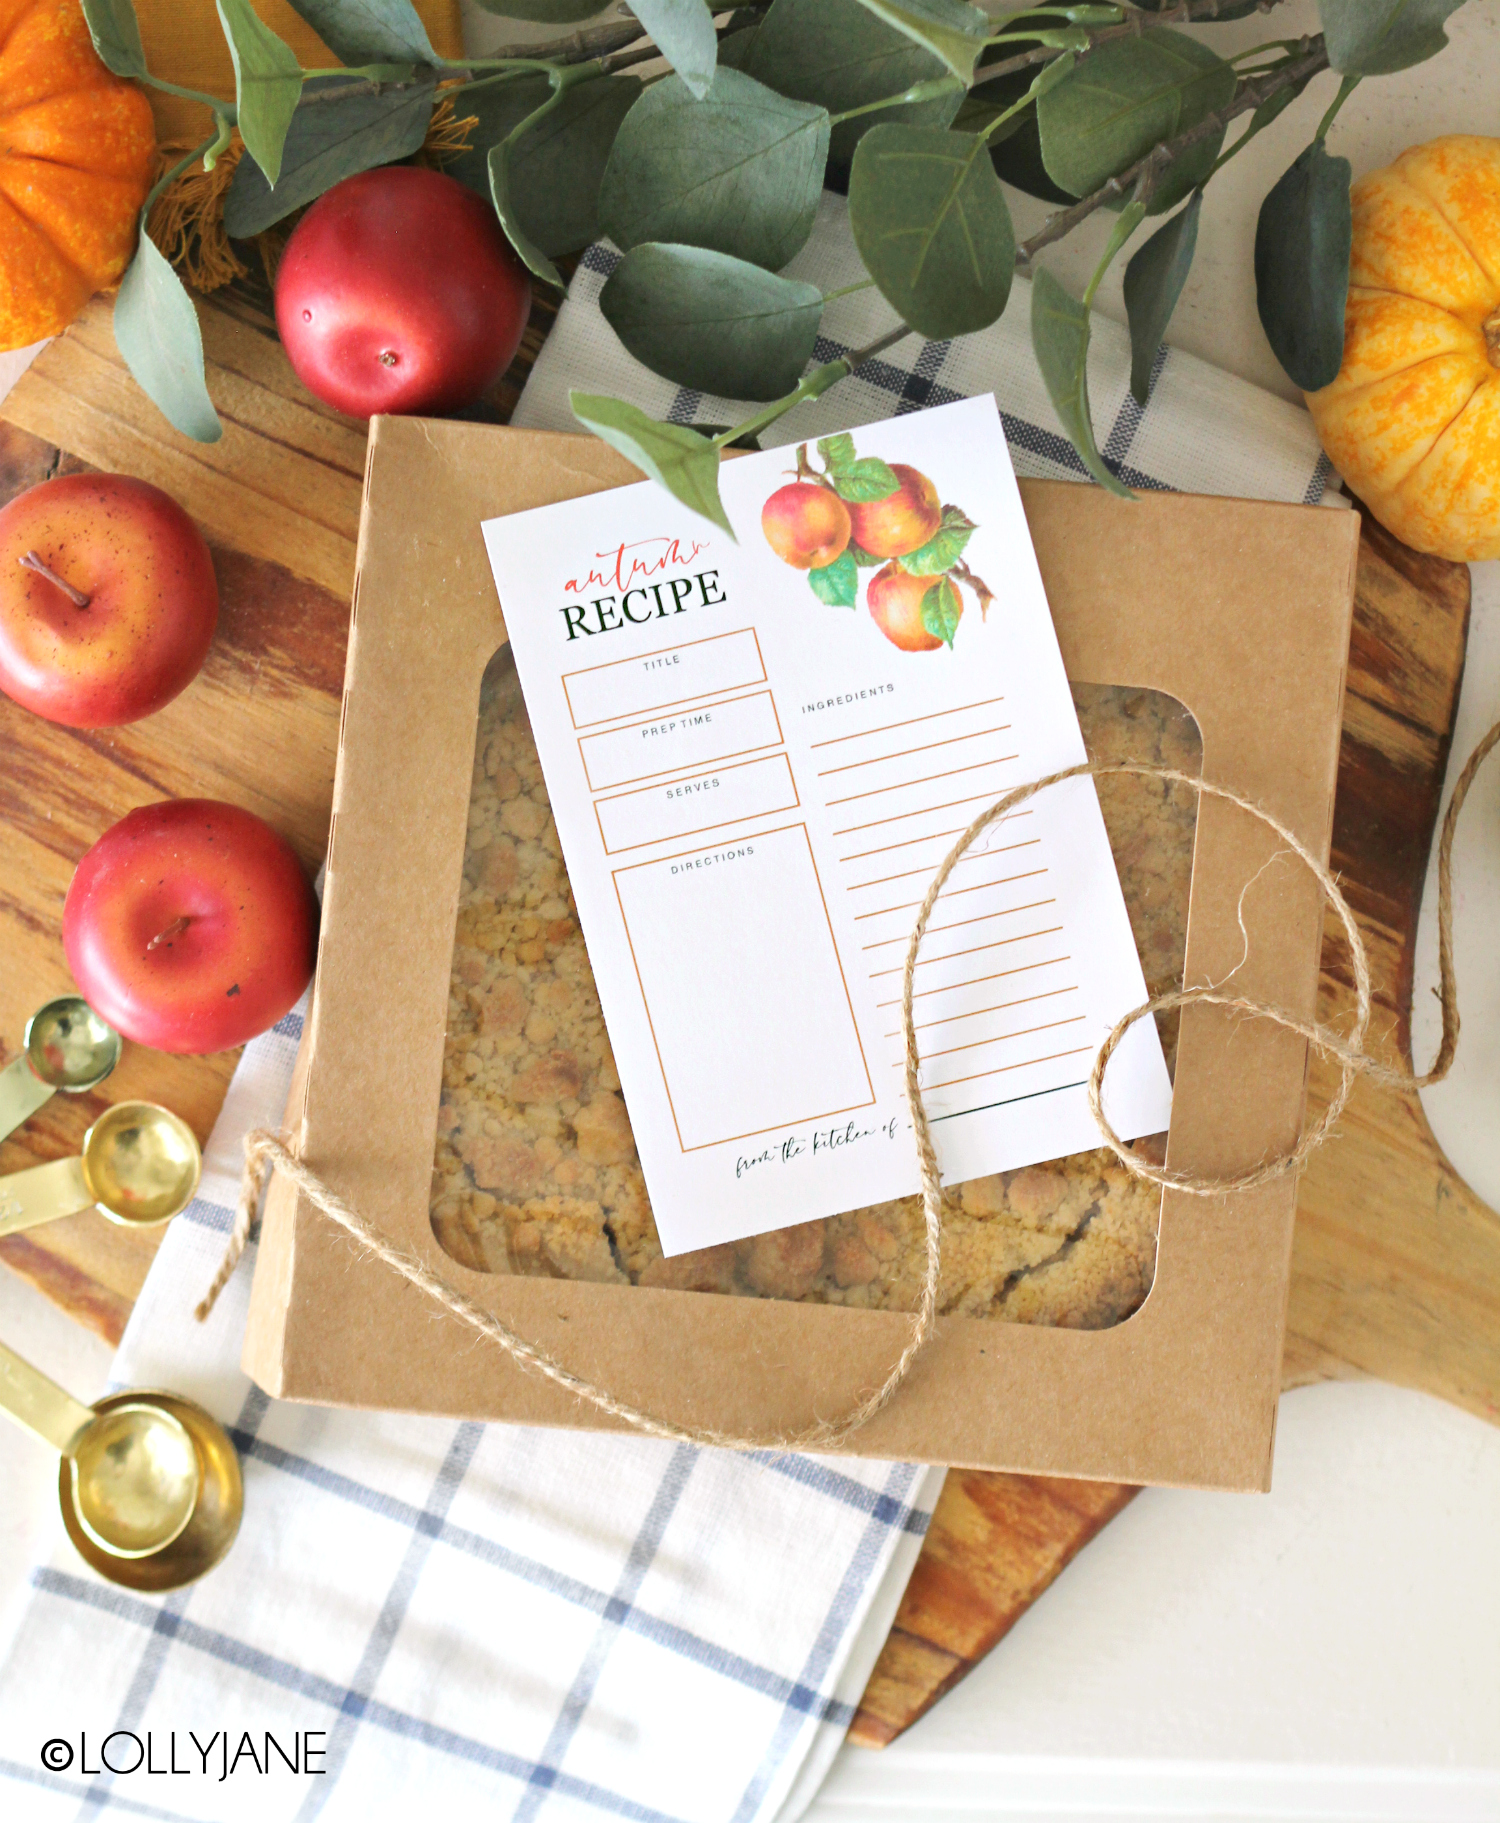 Gorgeous FREE fall theme recipe cards, perfect to keep track of all those autumn desserts and delicious fall foods! #freeprintable #fallprints #fallprintable #recipecards #recipecard #freerecipecard